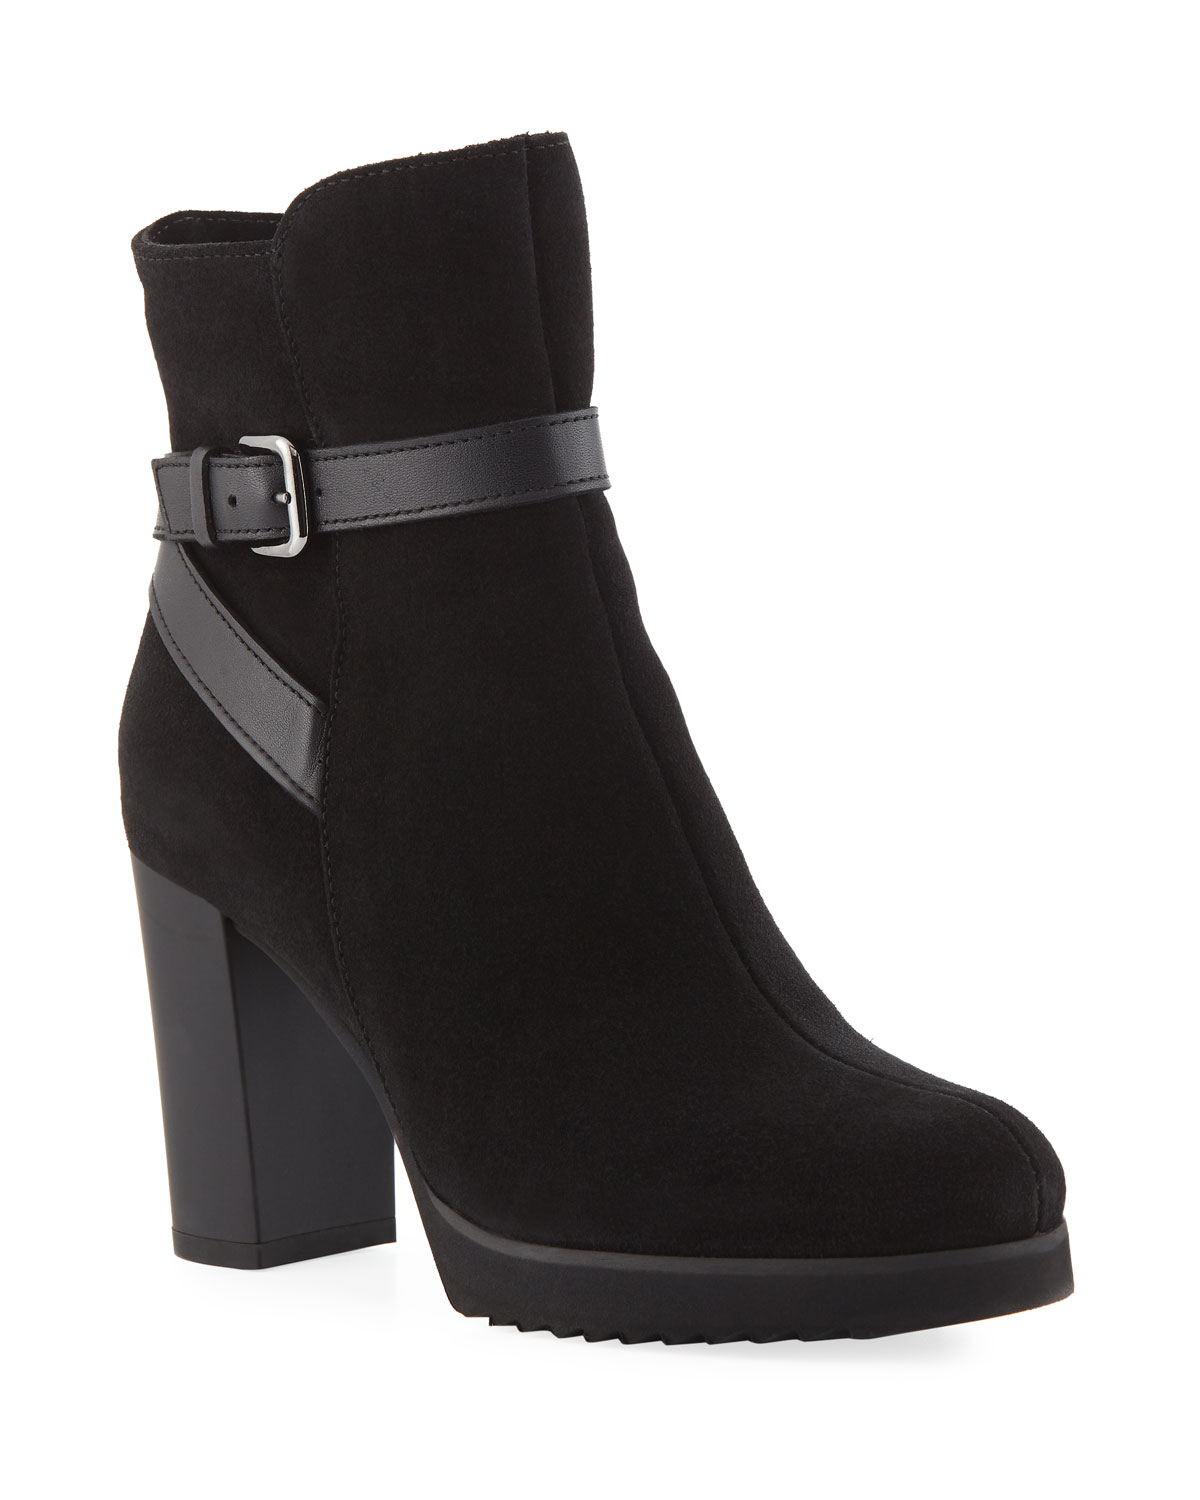 Meadow Suede Platform Booties, Black